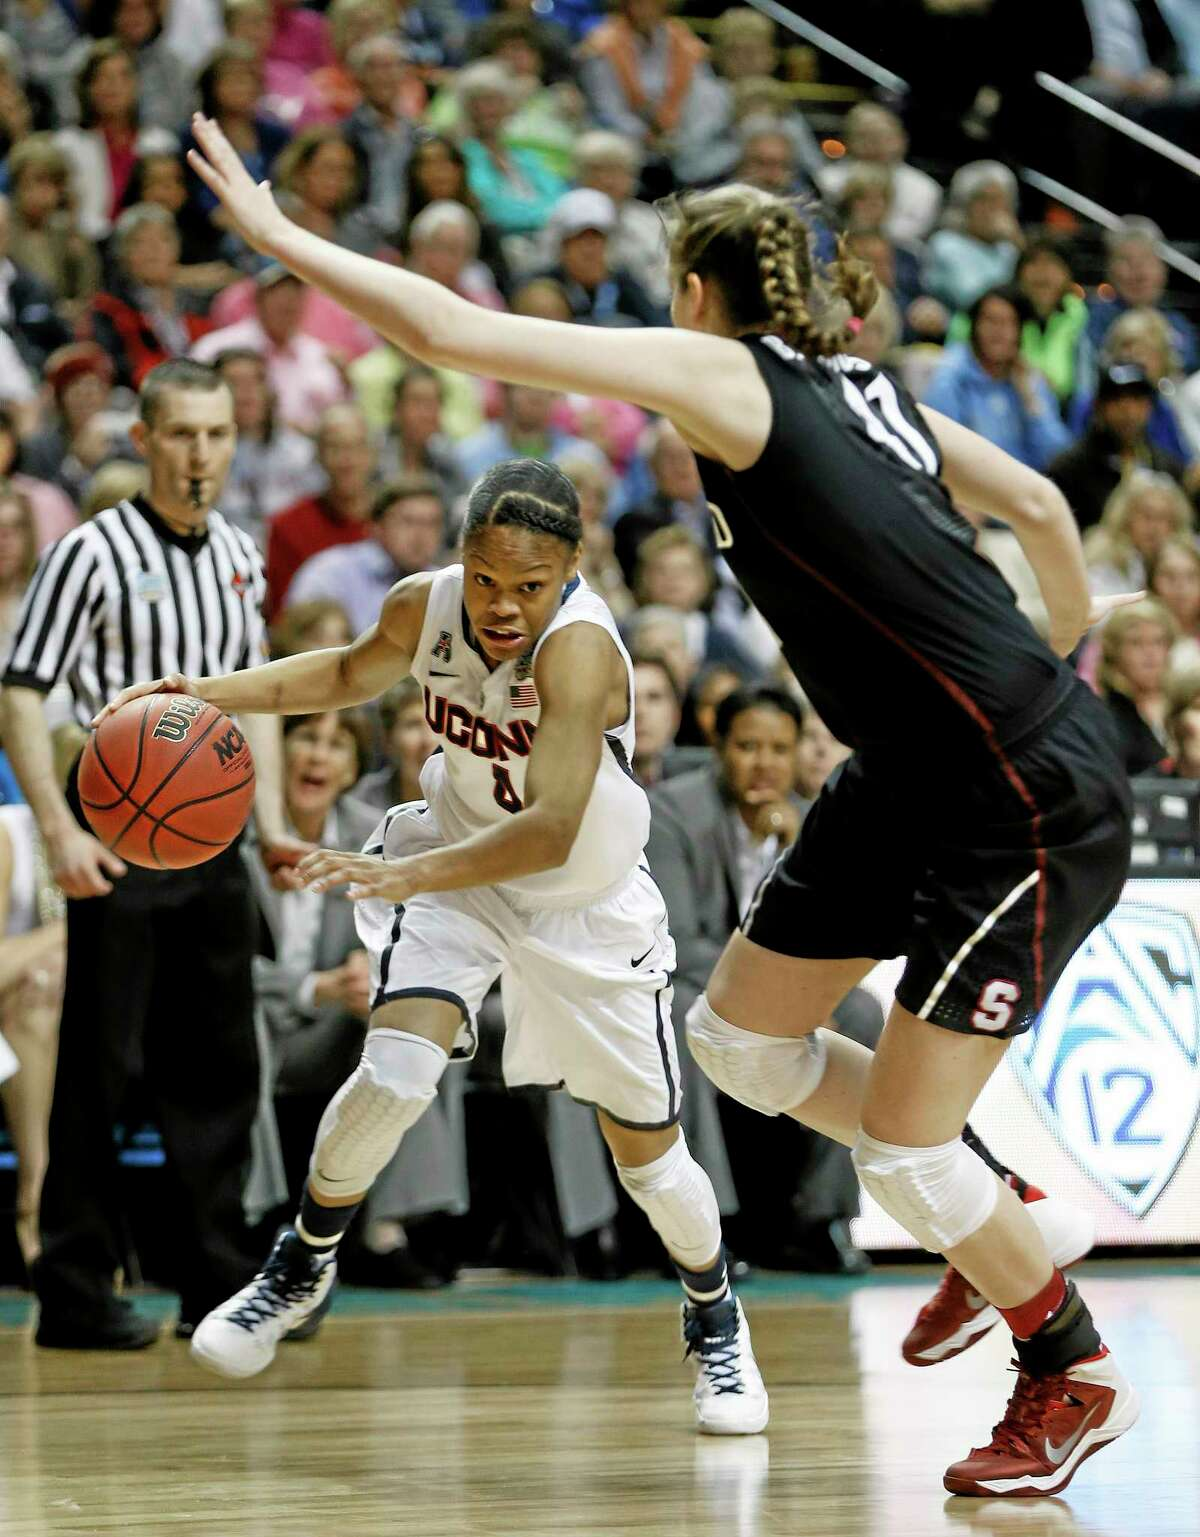 Connecticut guard Moriah Jefferson (4) moves by Stanford forward Bonnie Samuelson (41) during the first half of the semifinal game in the Final Four of the NCAA women's college basketball tournament, Sunday, April 6, 2014, in Nashville, Tenn. (AP Photo/Mark Humphrey)